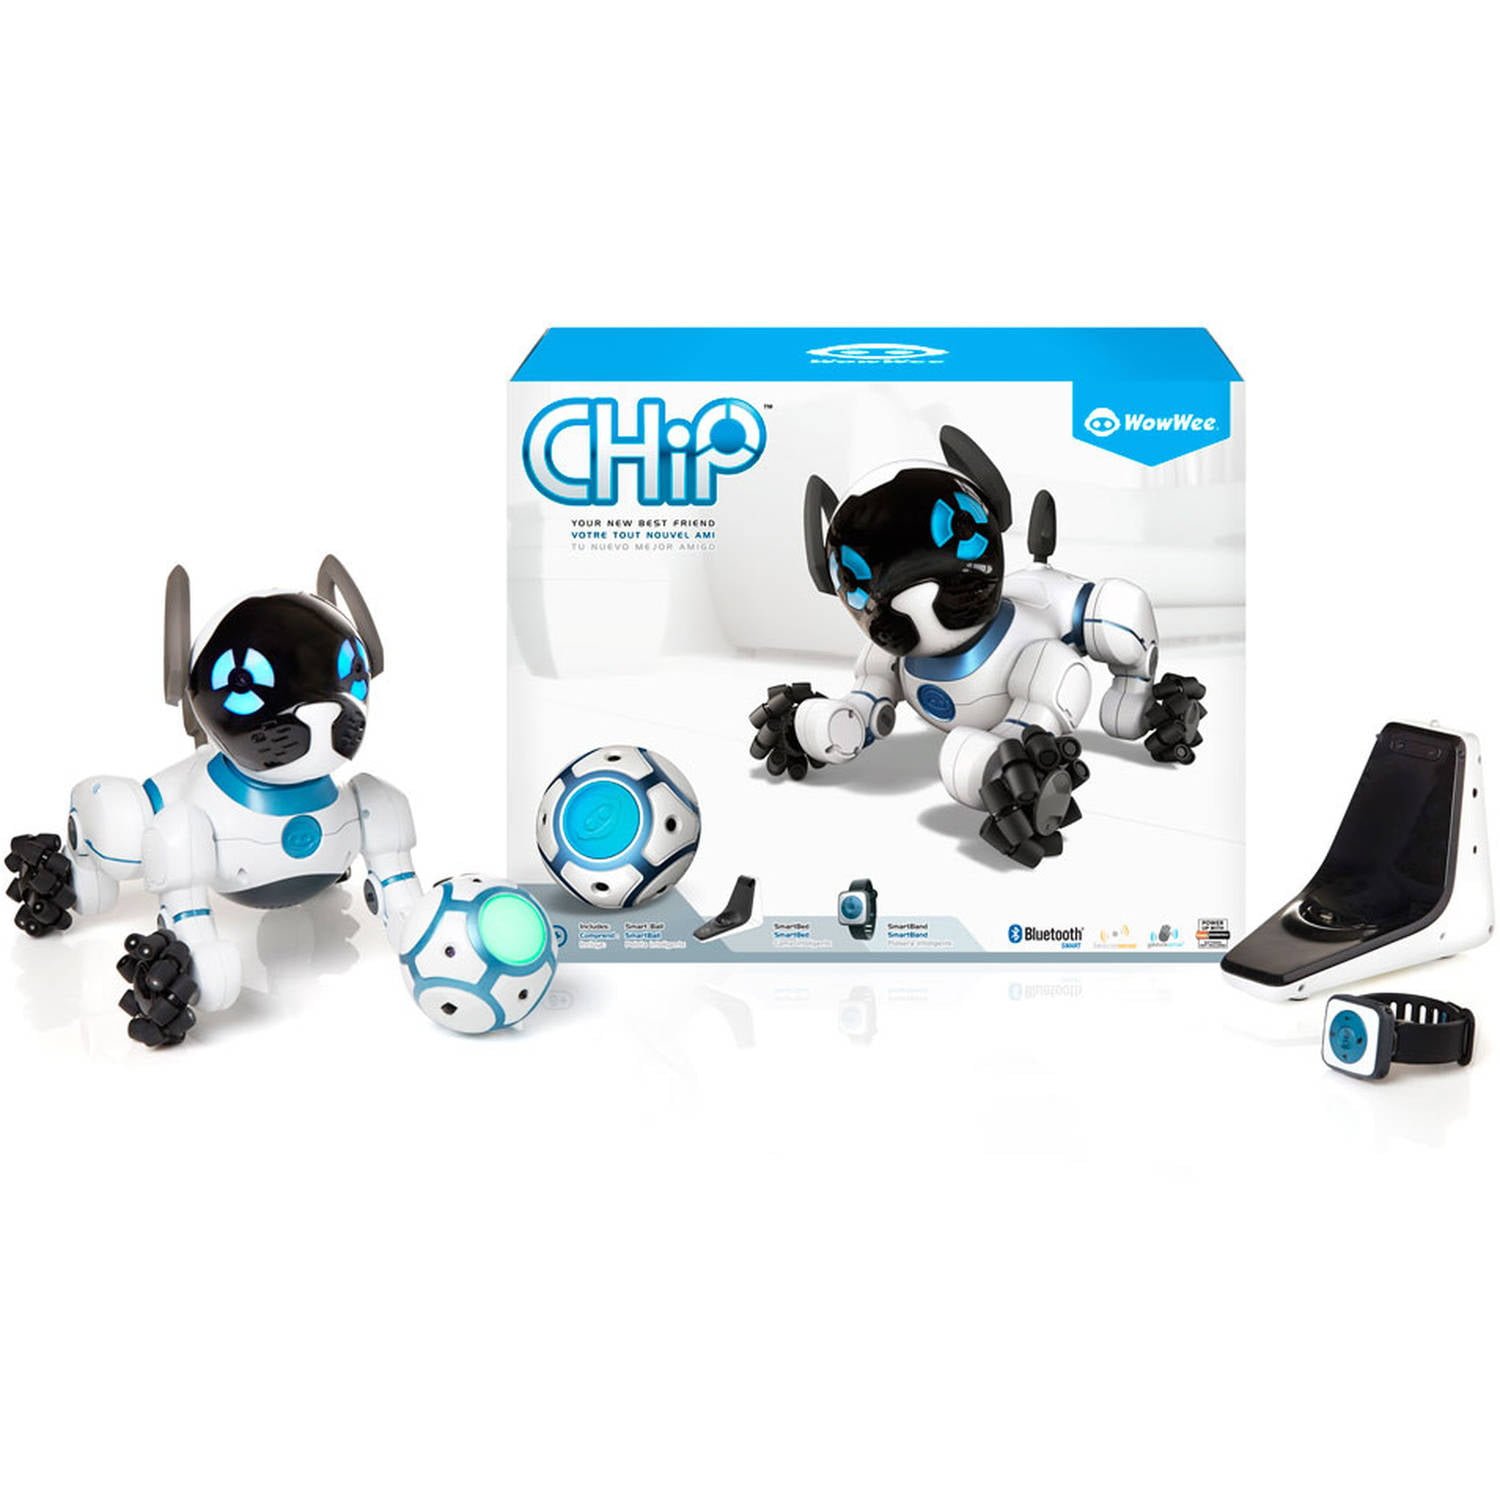 Wowwee Chip Robot Dog Walmart